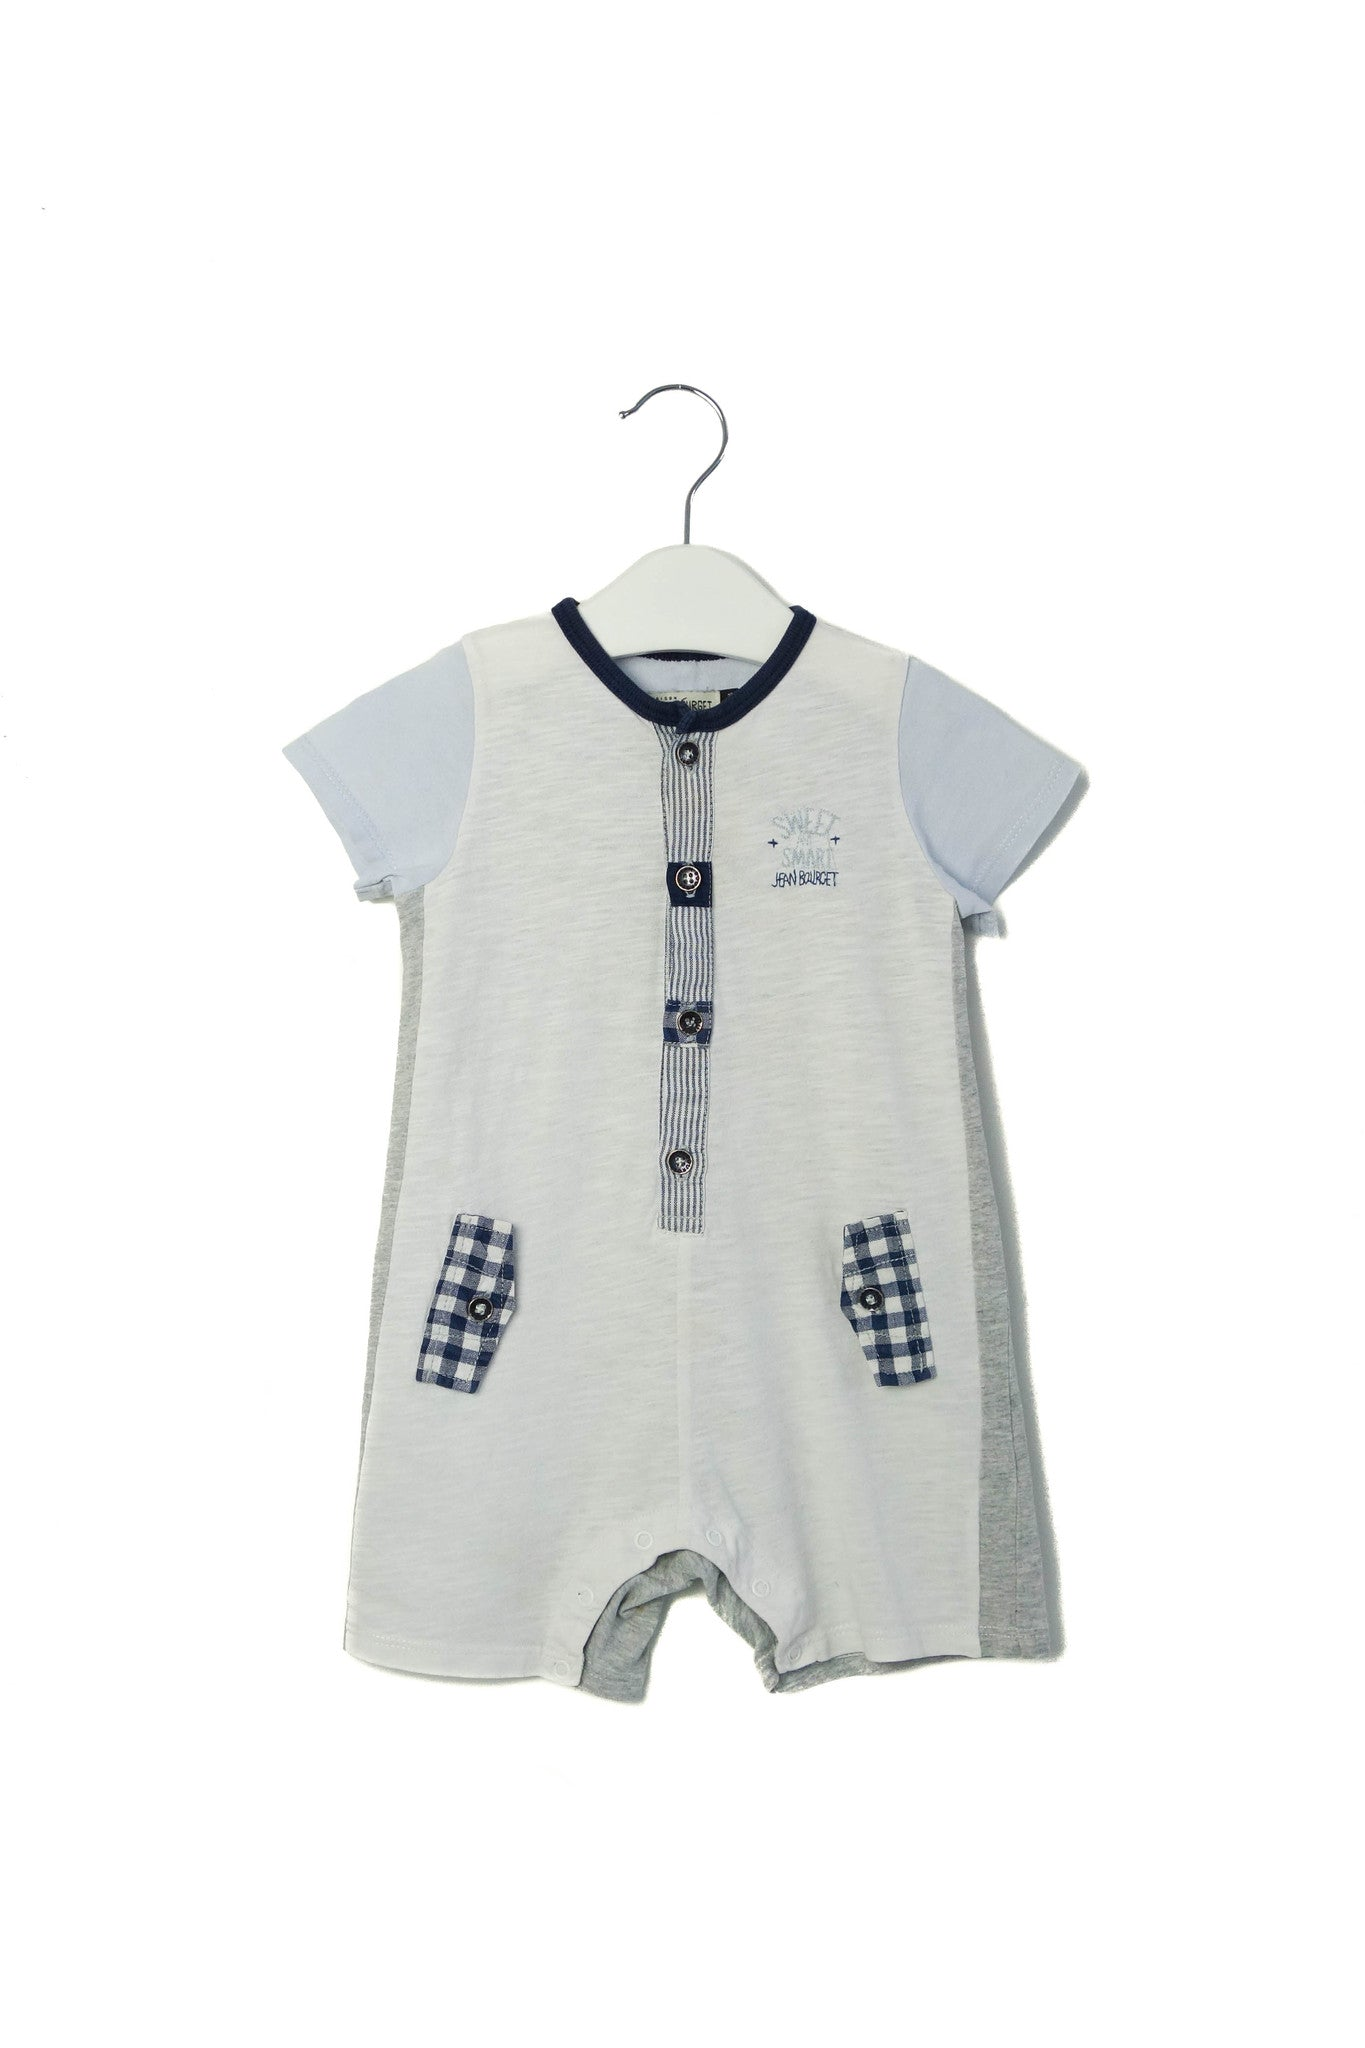 10003122 Jean Bourget Baby~Romper 12M at Retykle